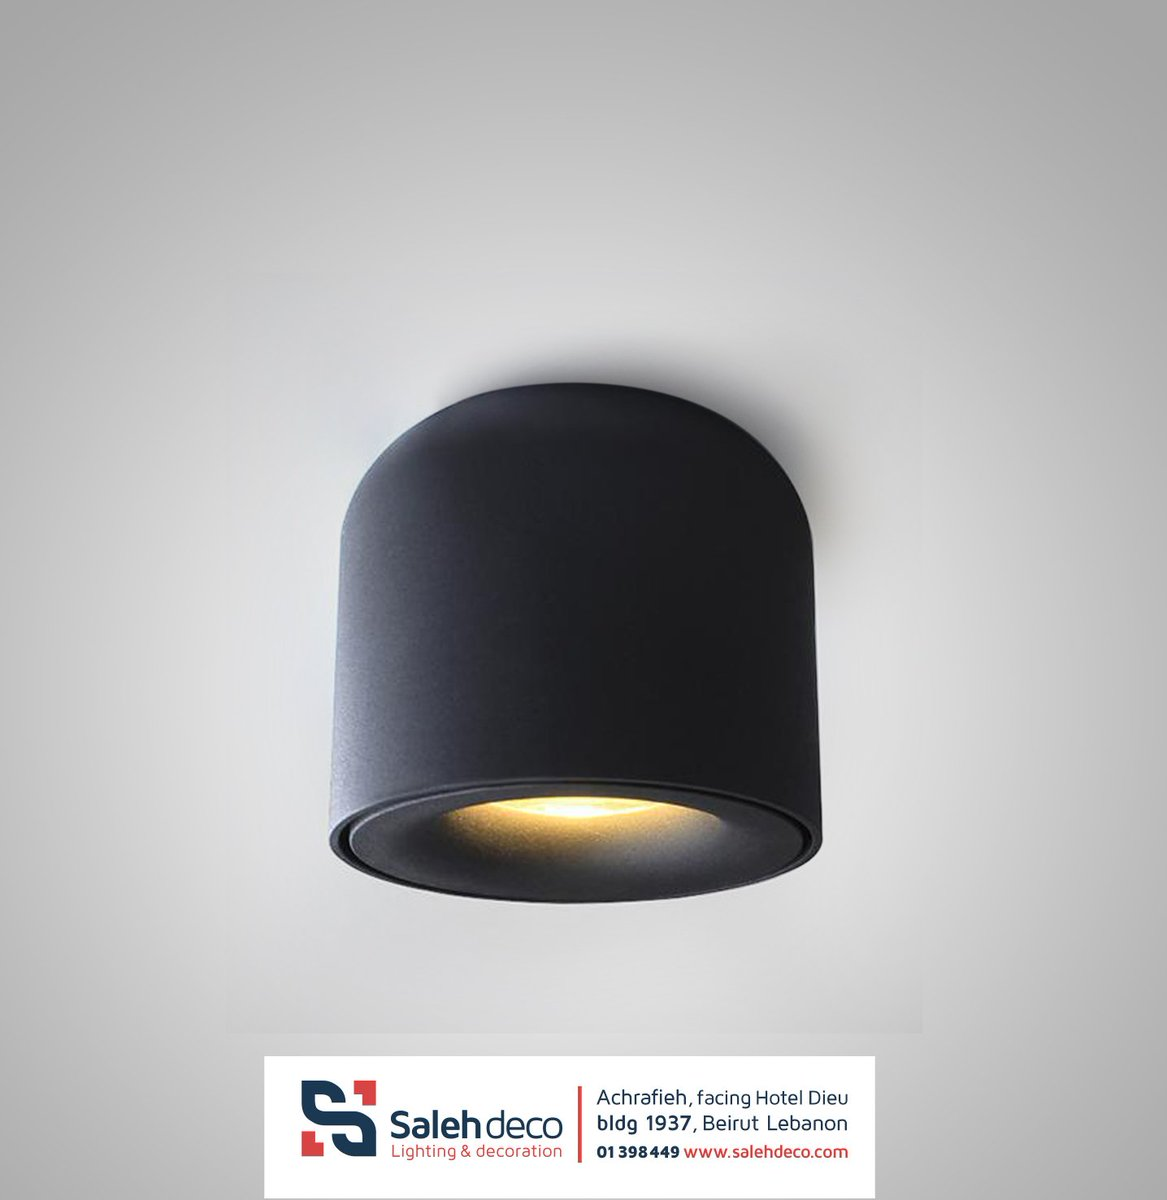 LED Ceiling Spots, Surface Mounted Downlight, 10W 3000K Warm White, Available in Black and white. Ideal Spotlight for Hallway, Corridor, Gallery Display, Kitchen and Living Room spot light for indoor Foyer, Living..Rotates 360D  ☎️ 01398449 https://t.co/tpx9dSZoO9